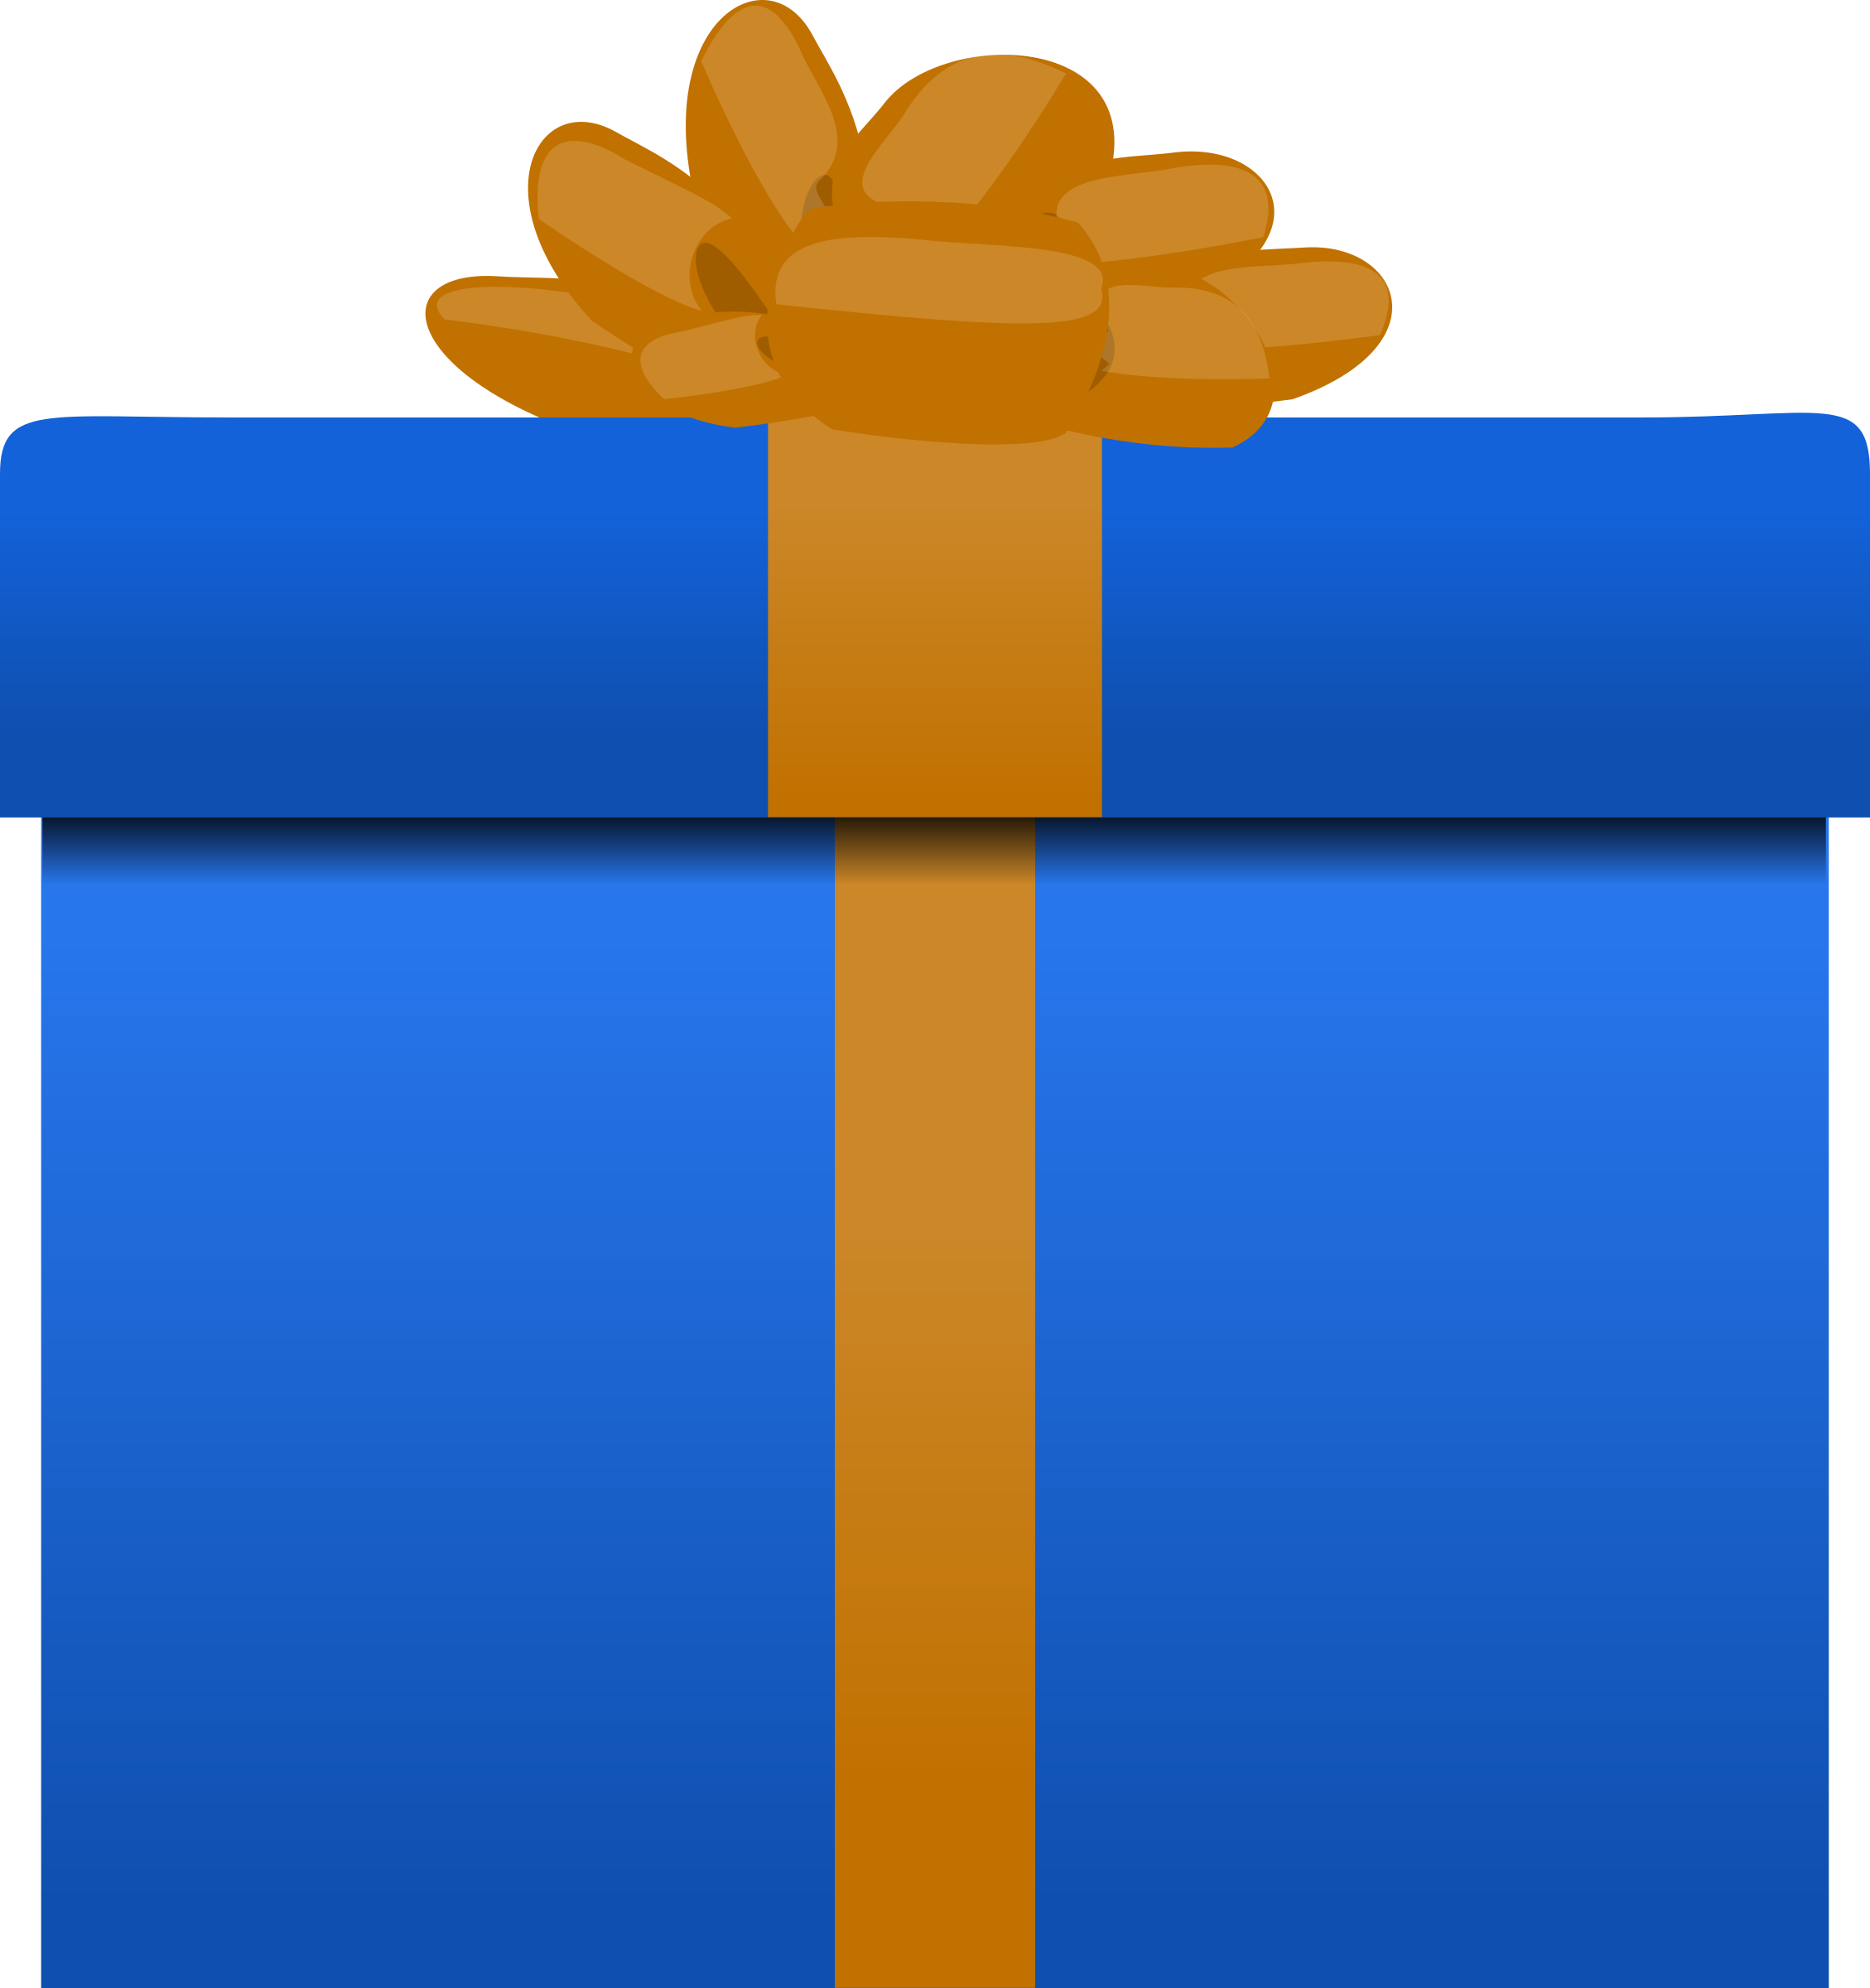 Flat gift box, gradient-based by Wuzzy